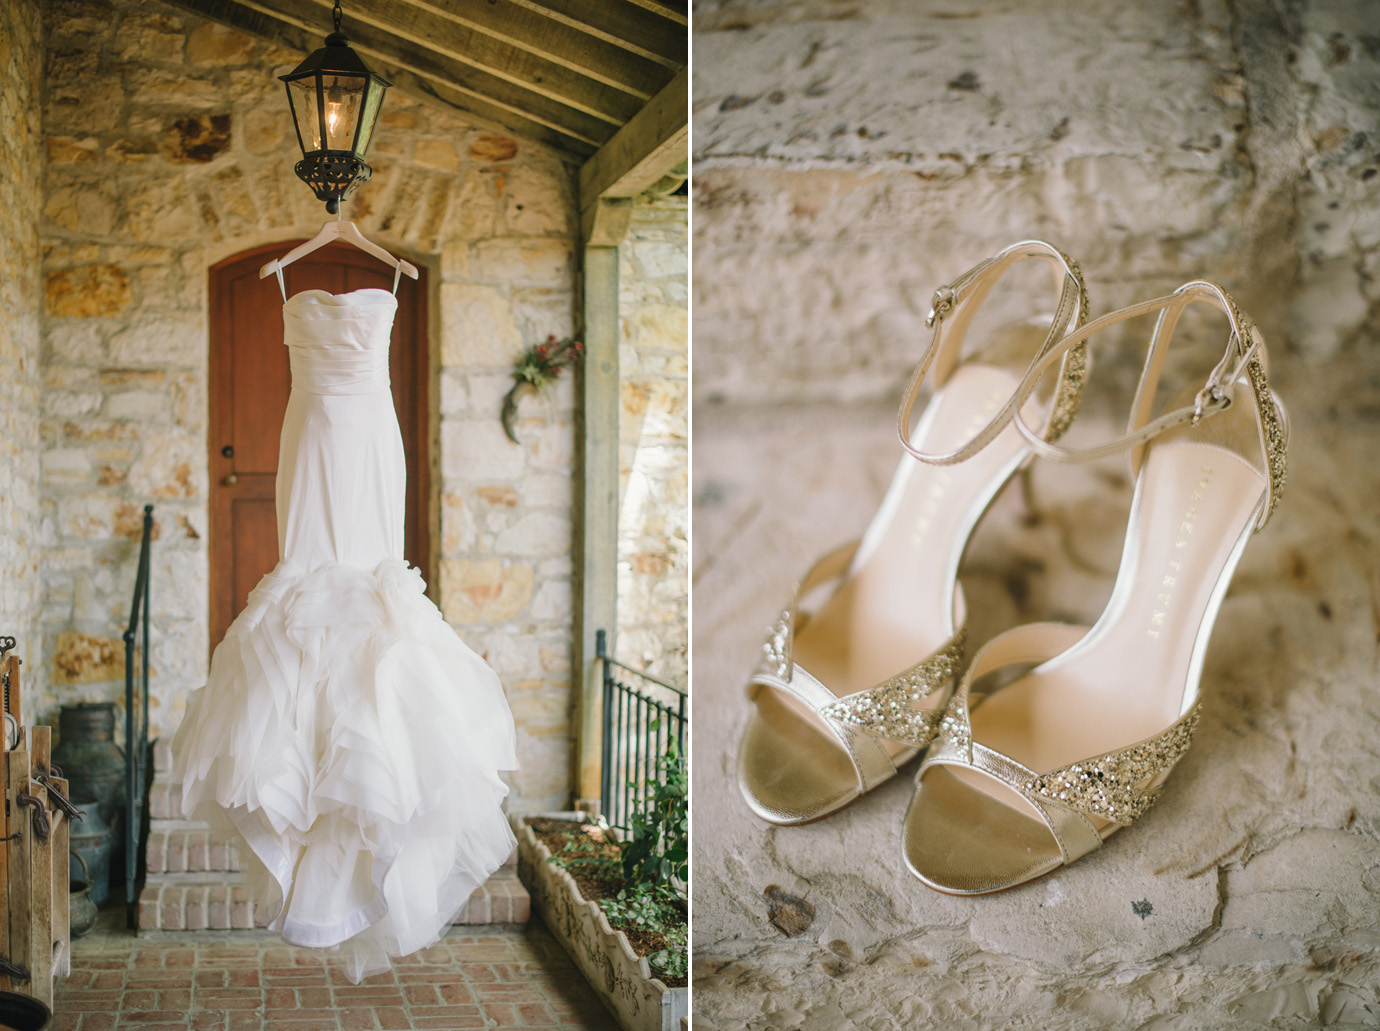 caramel-wedding-location-ideas